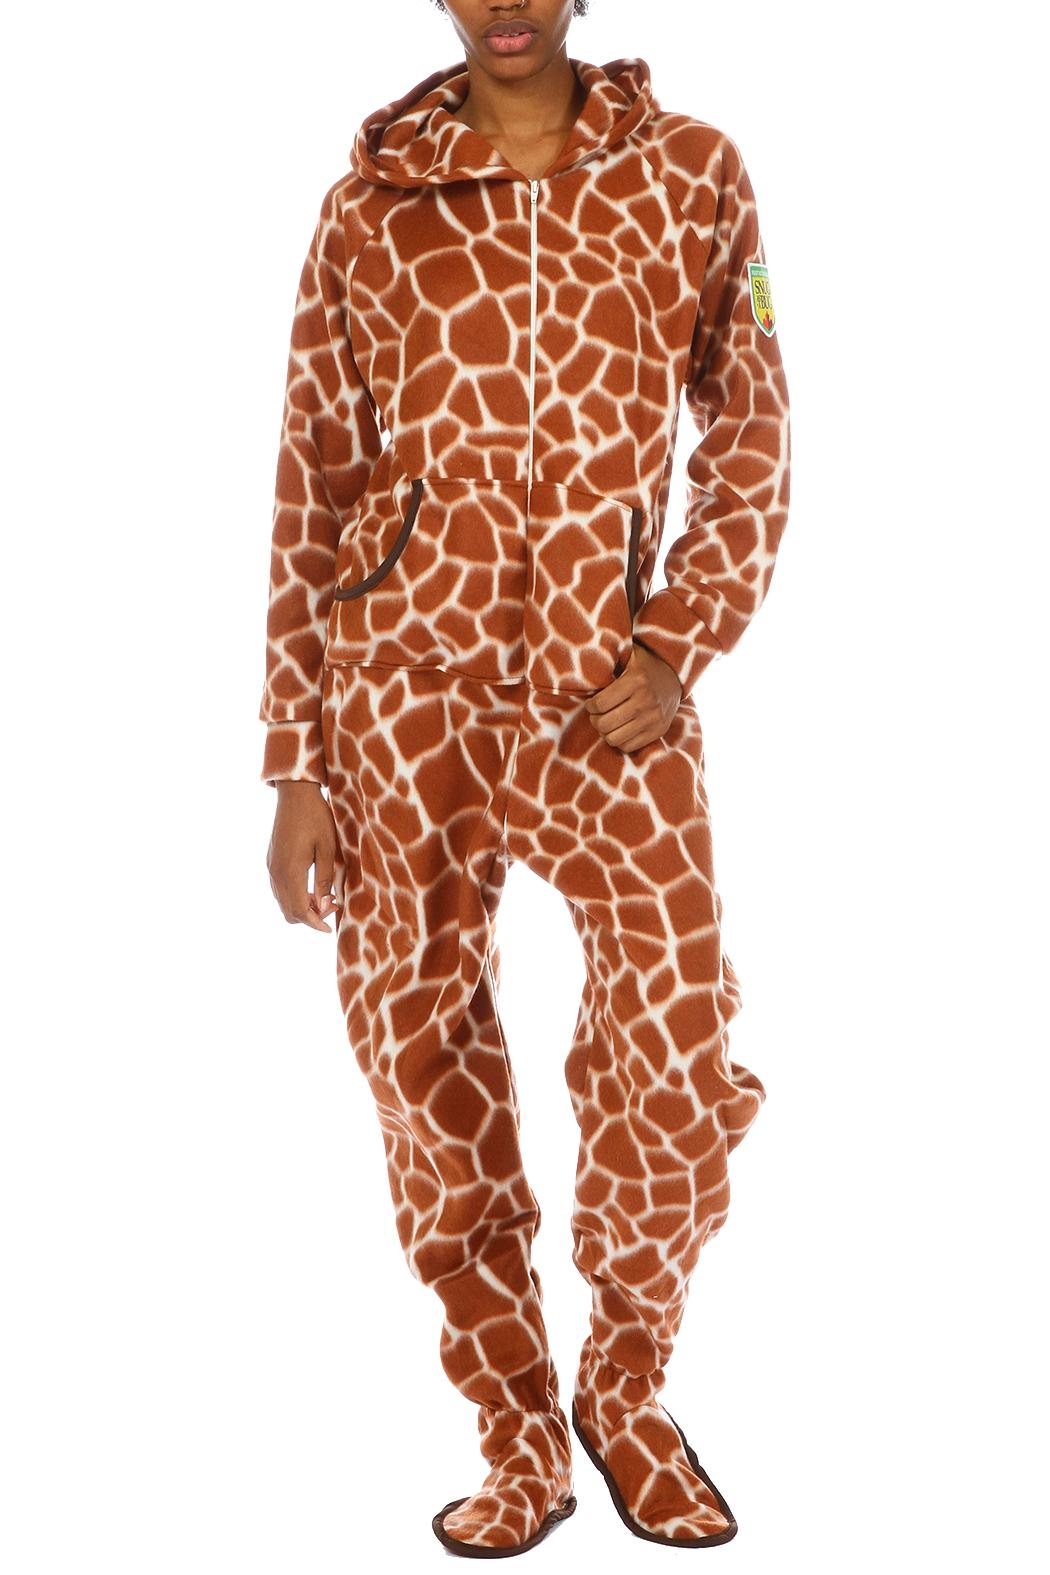 Snug As a Bug Giraffe Onesie from